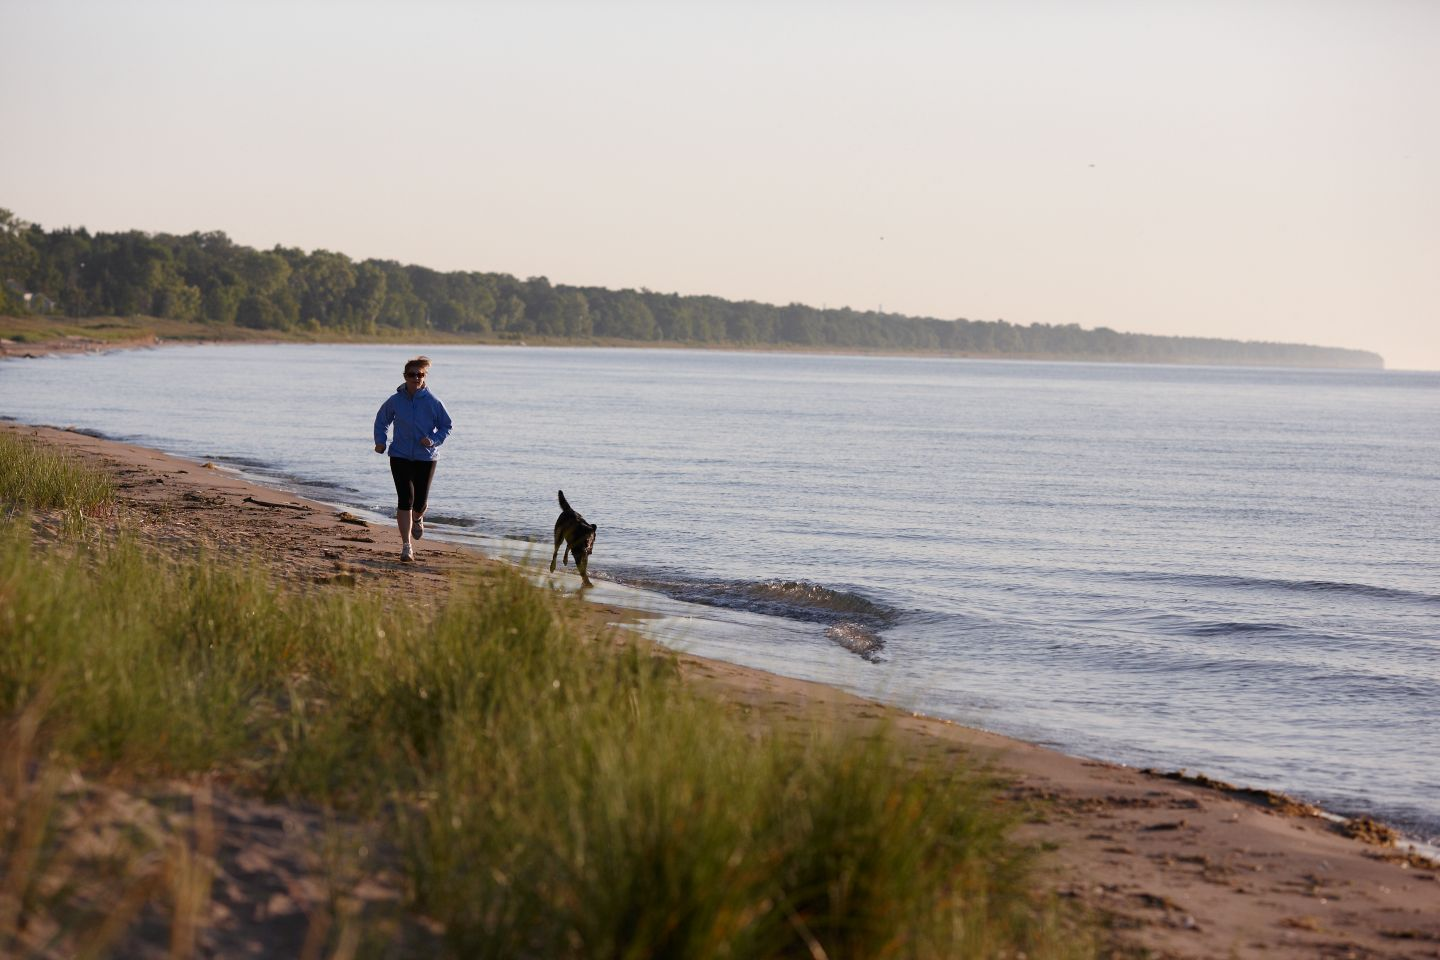 Lady running with dog on Lake Michigan beach